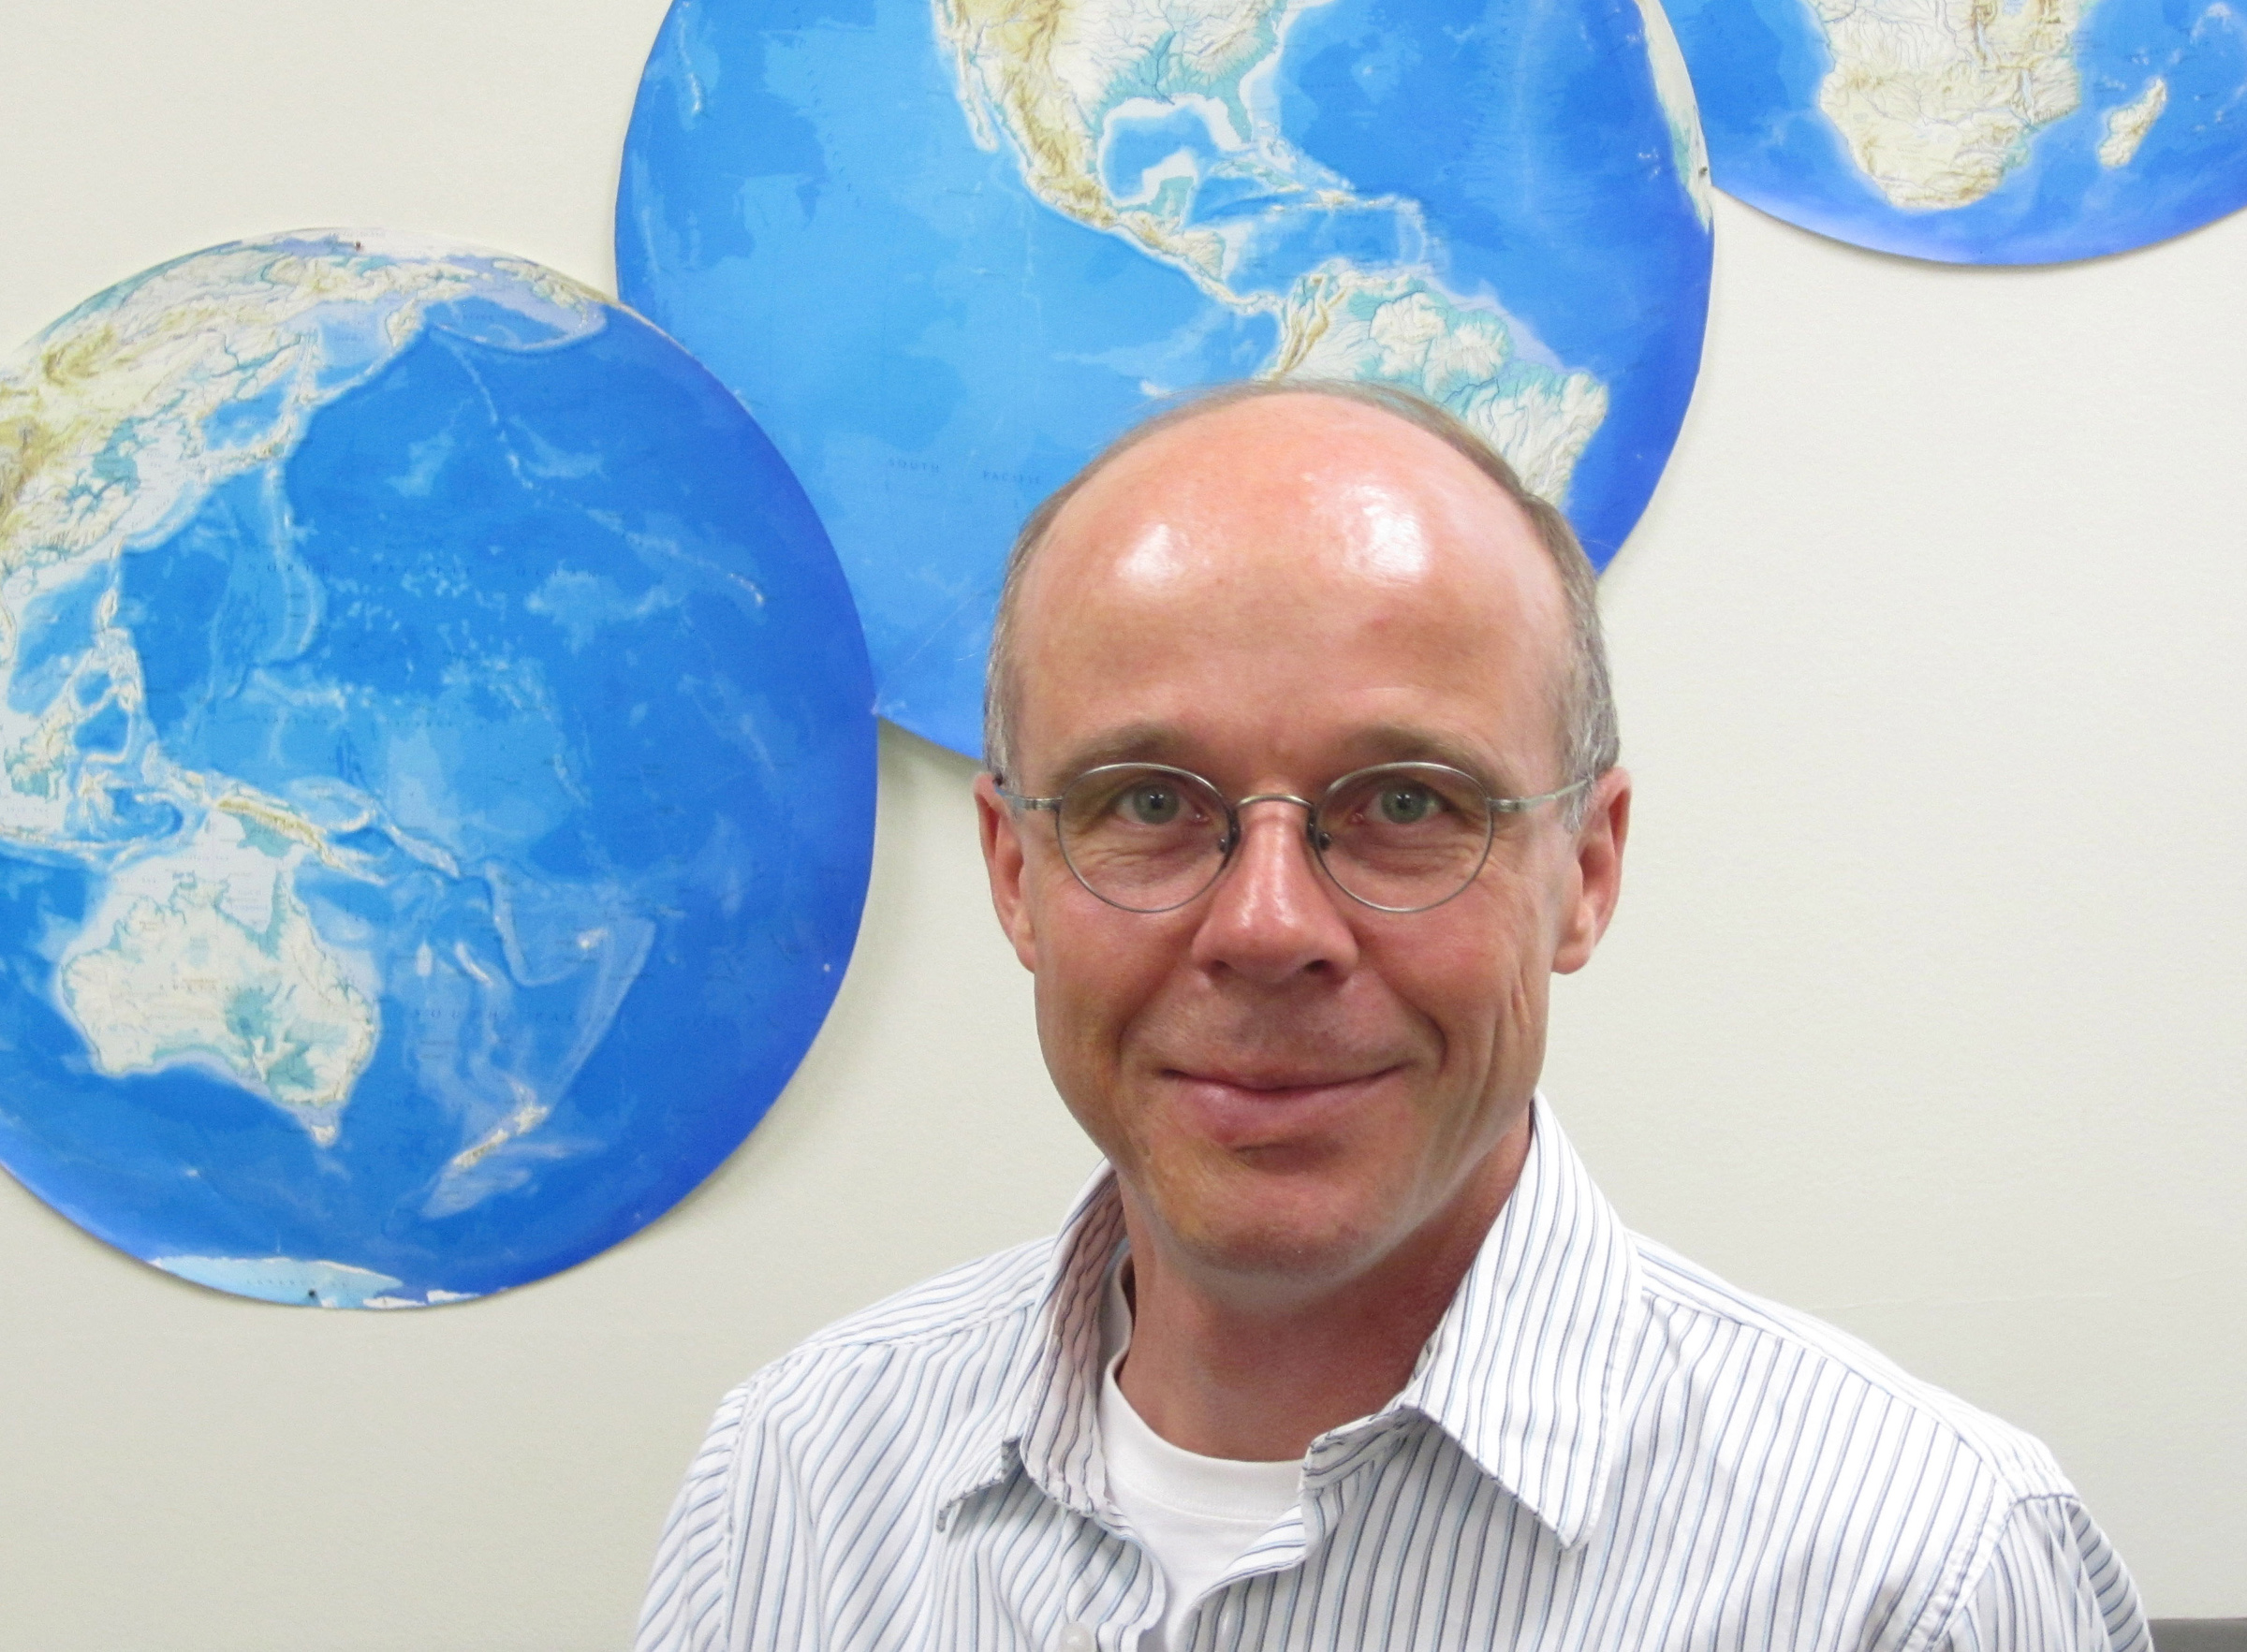 Thomas Reichler, a University of Utah atmospheric scientist, led a new study showing that changes in winds 15- to 30-miles high in the stratosphere can influence seawater circulation a mile or more deep in the ocean. He says this effect should be taken into account in forecasting climate change distinct from global warming.